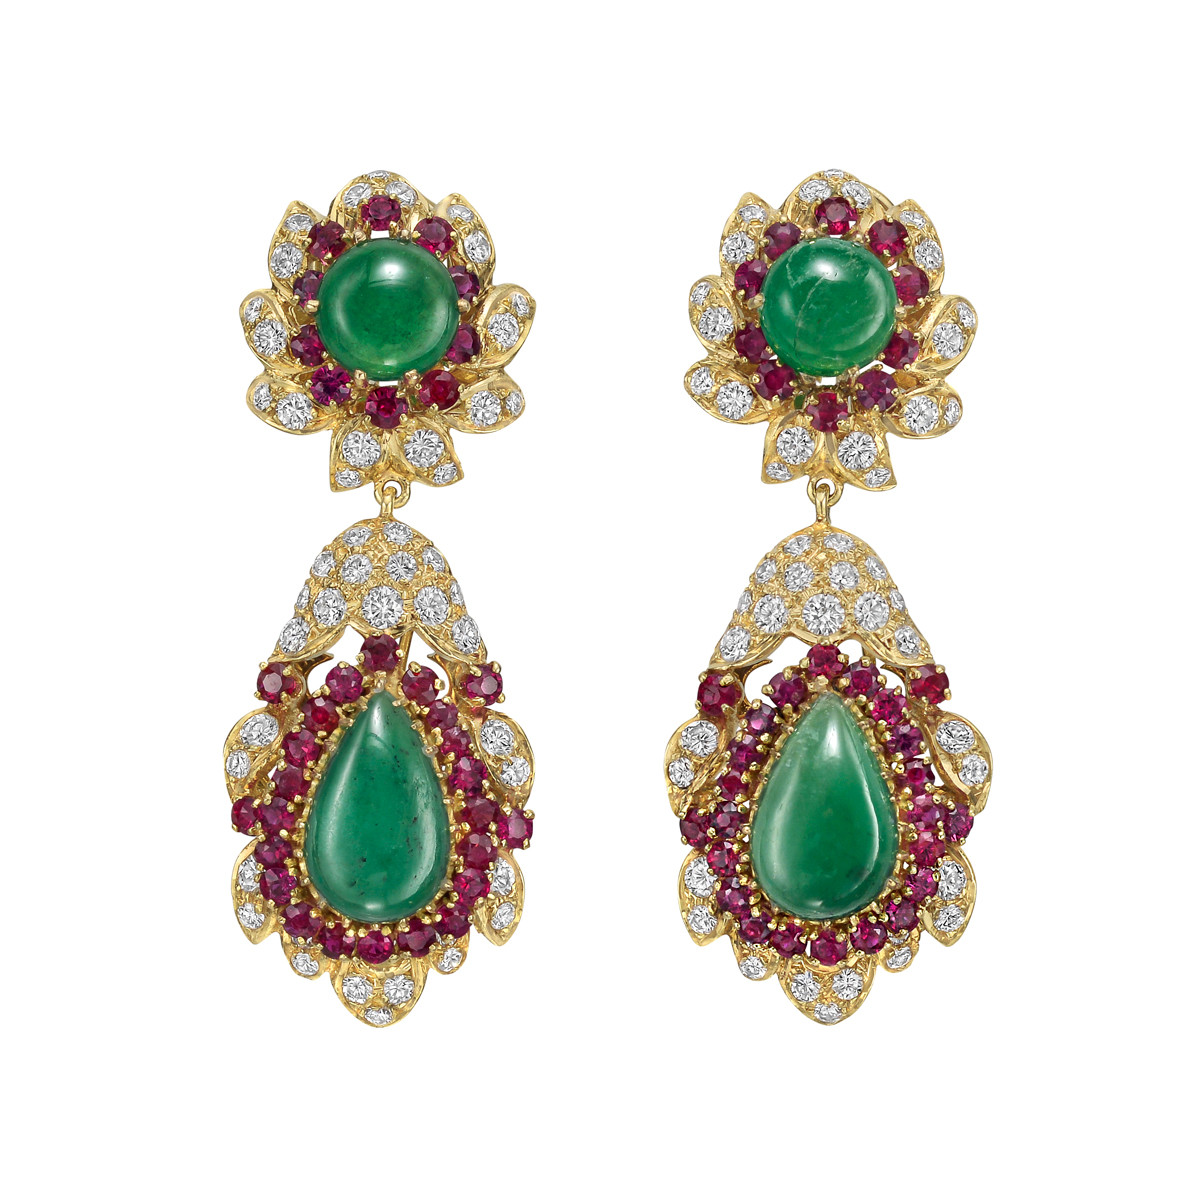 Emerald, Ruby, Diamond & Jade Pendant Earrings